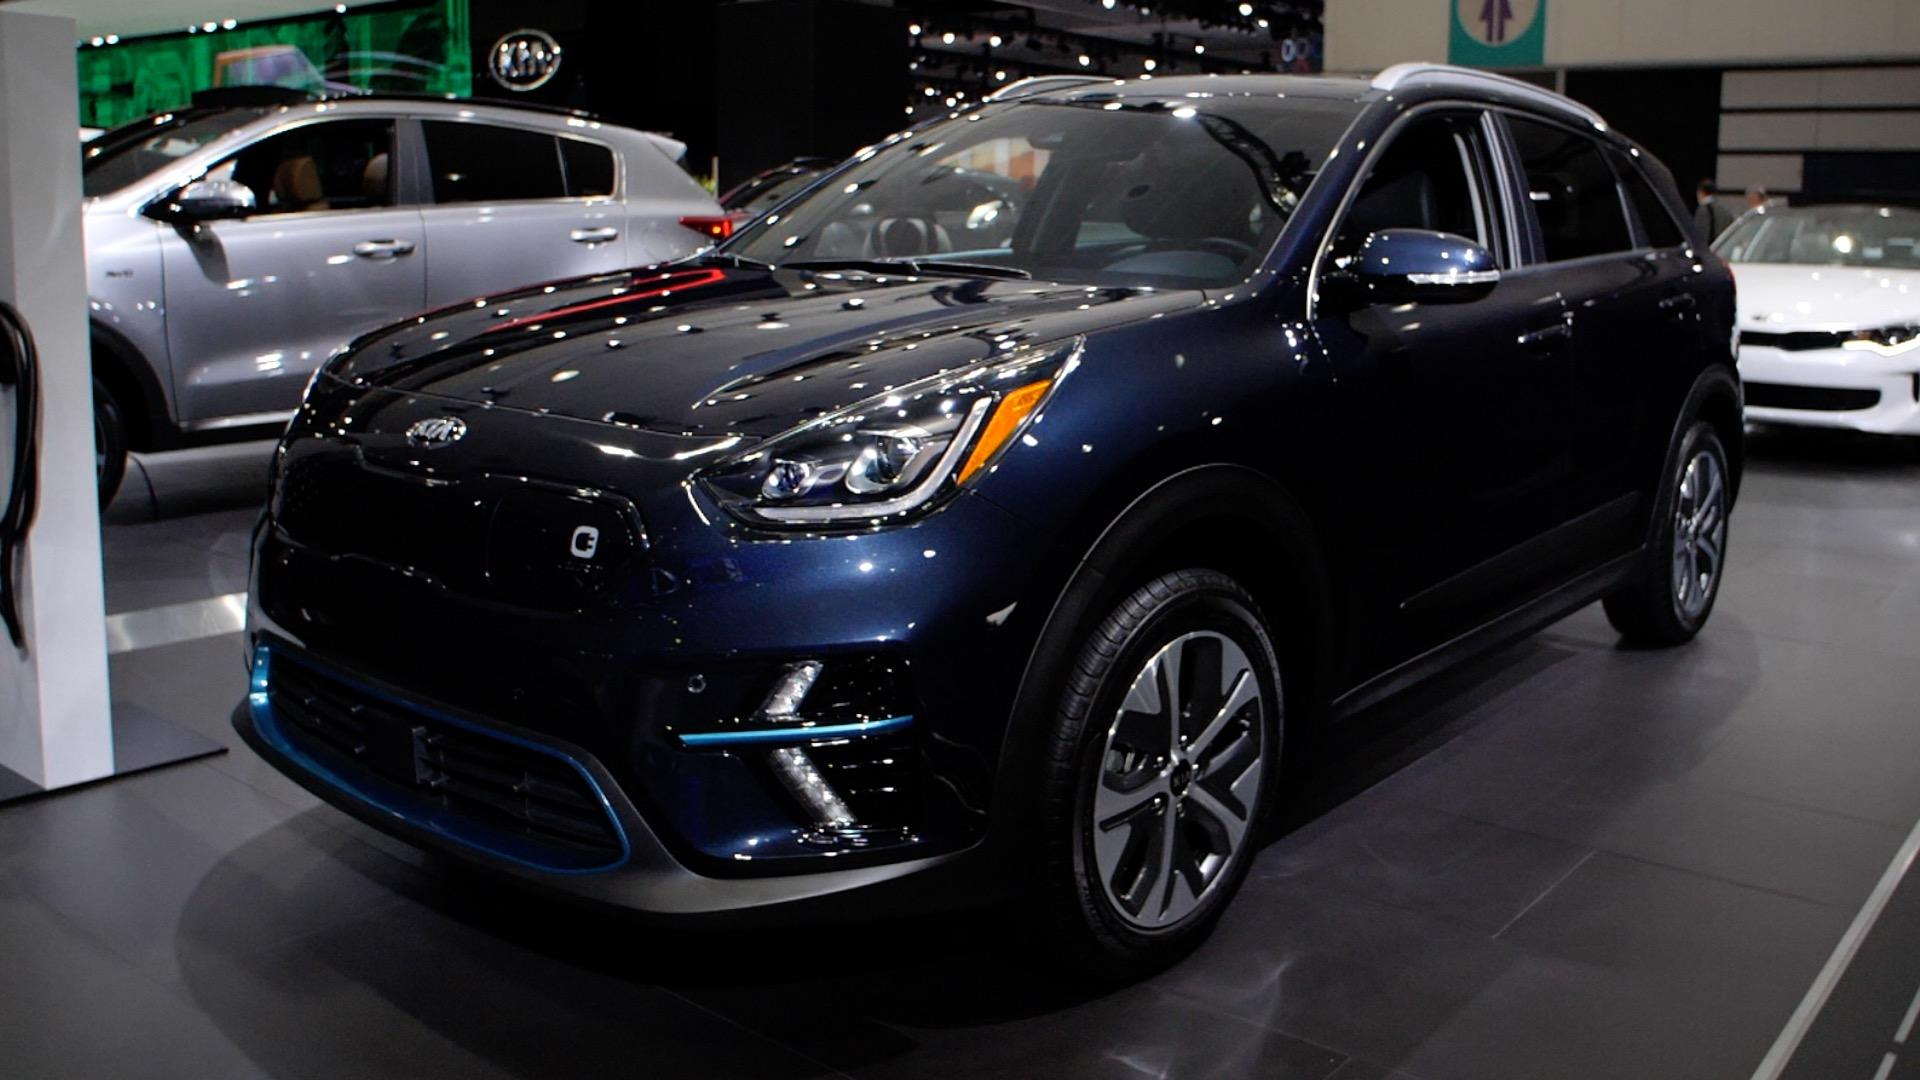 Video: All-electric 2019 Kia Niro EV debuts at the LA Auto Show